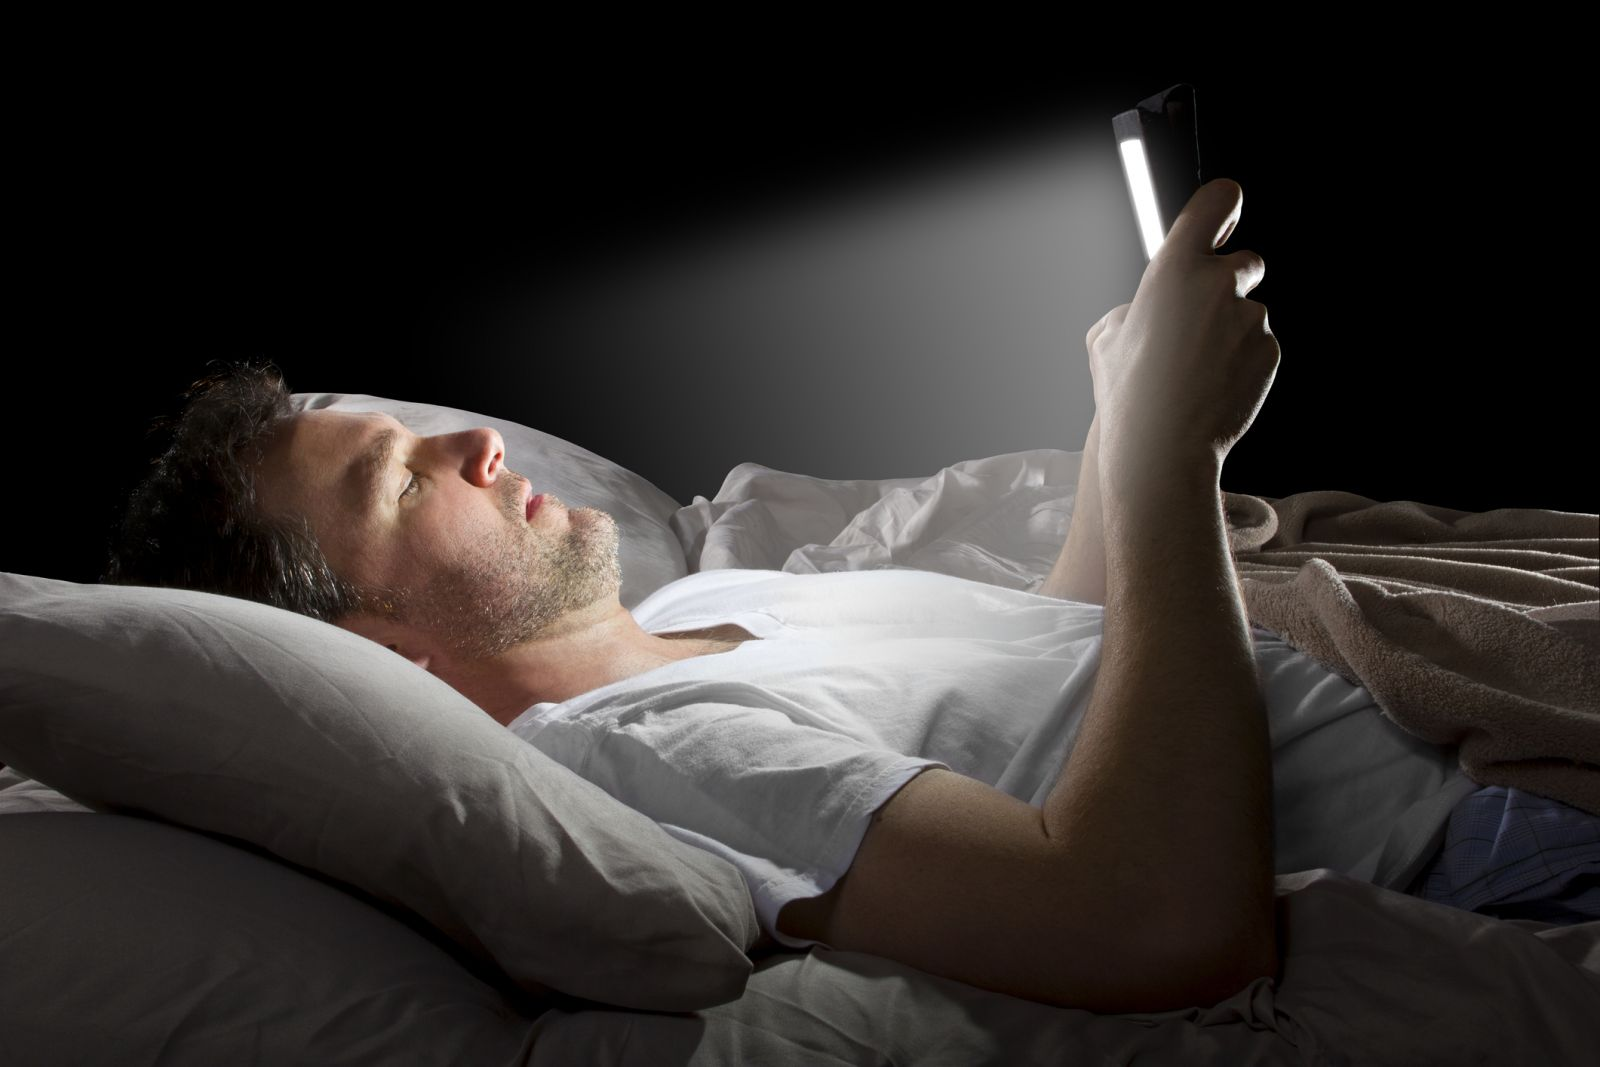 How Does Browsing On Phone Before Sleep Affect Your Health?